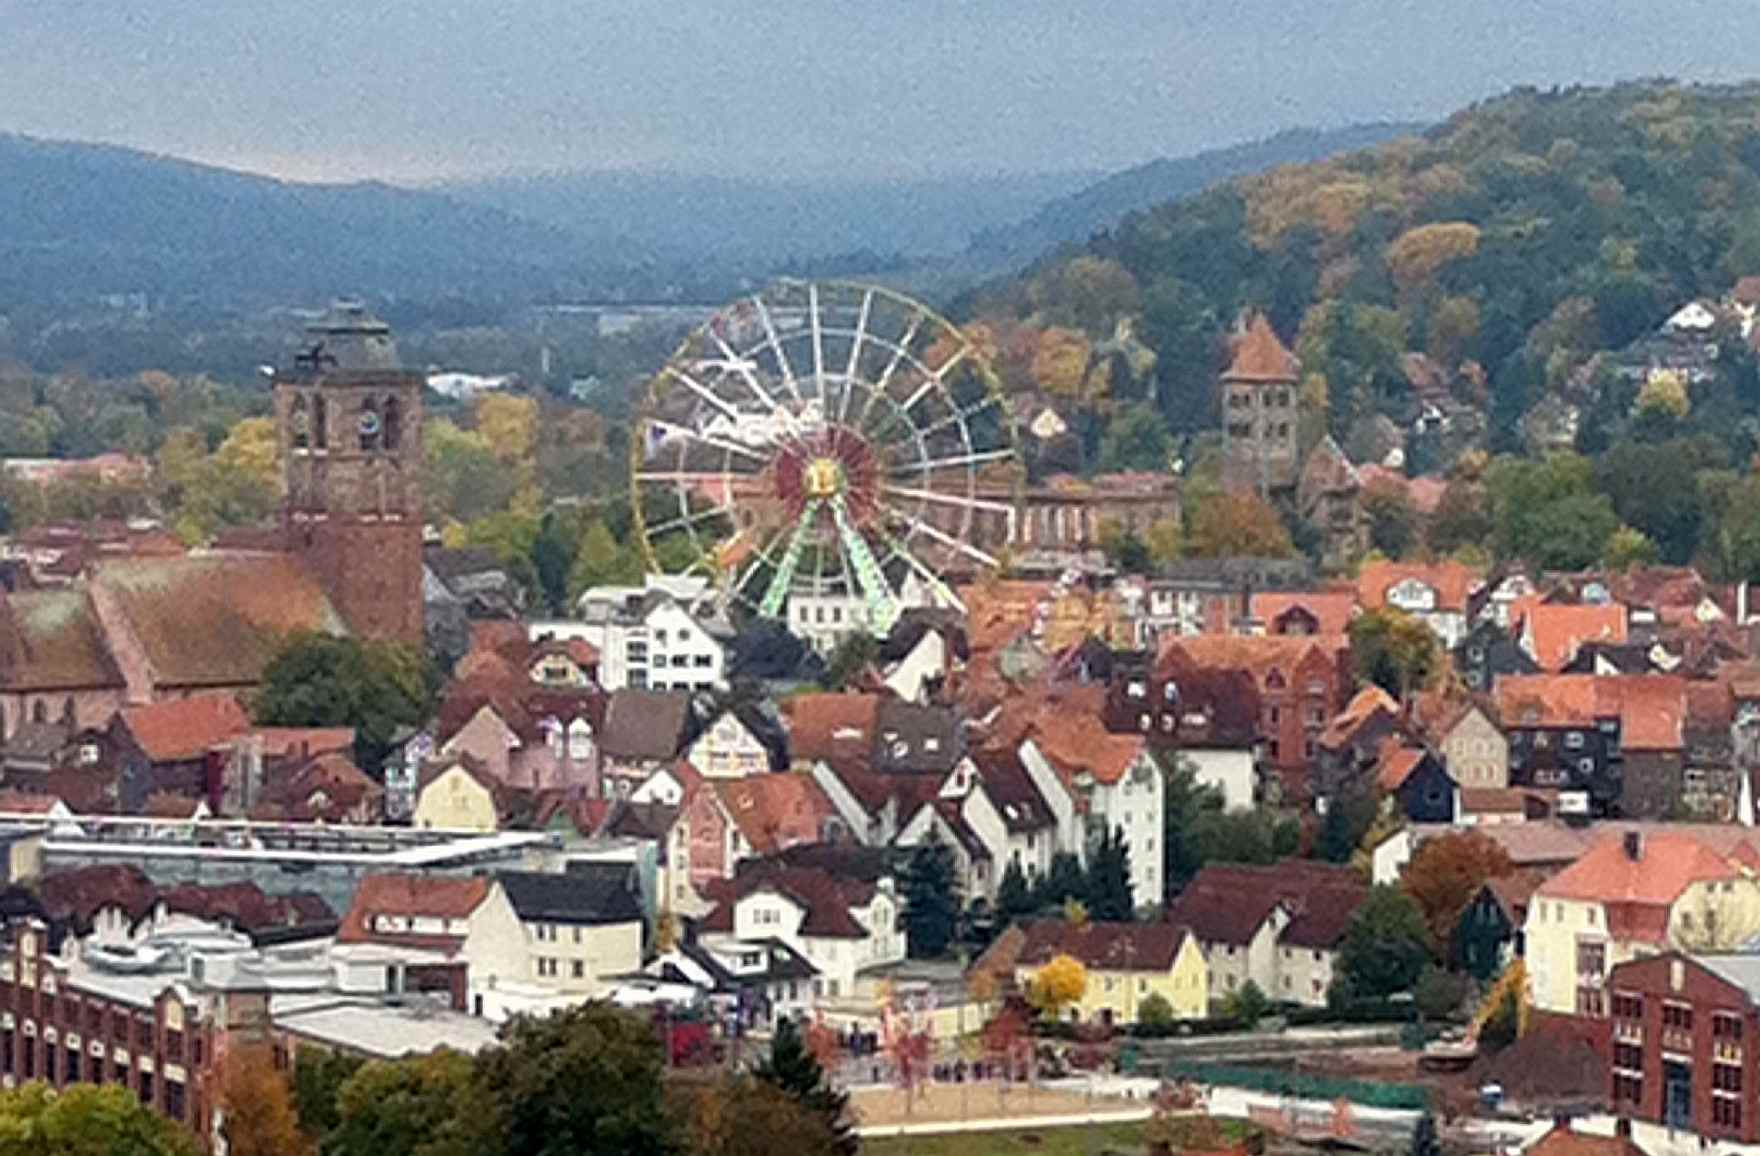 My home town Bad Hersfeld in Germany - EC Oxford